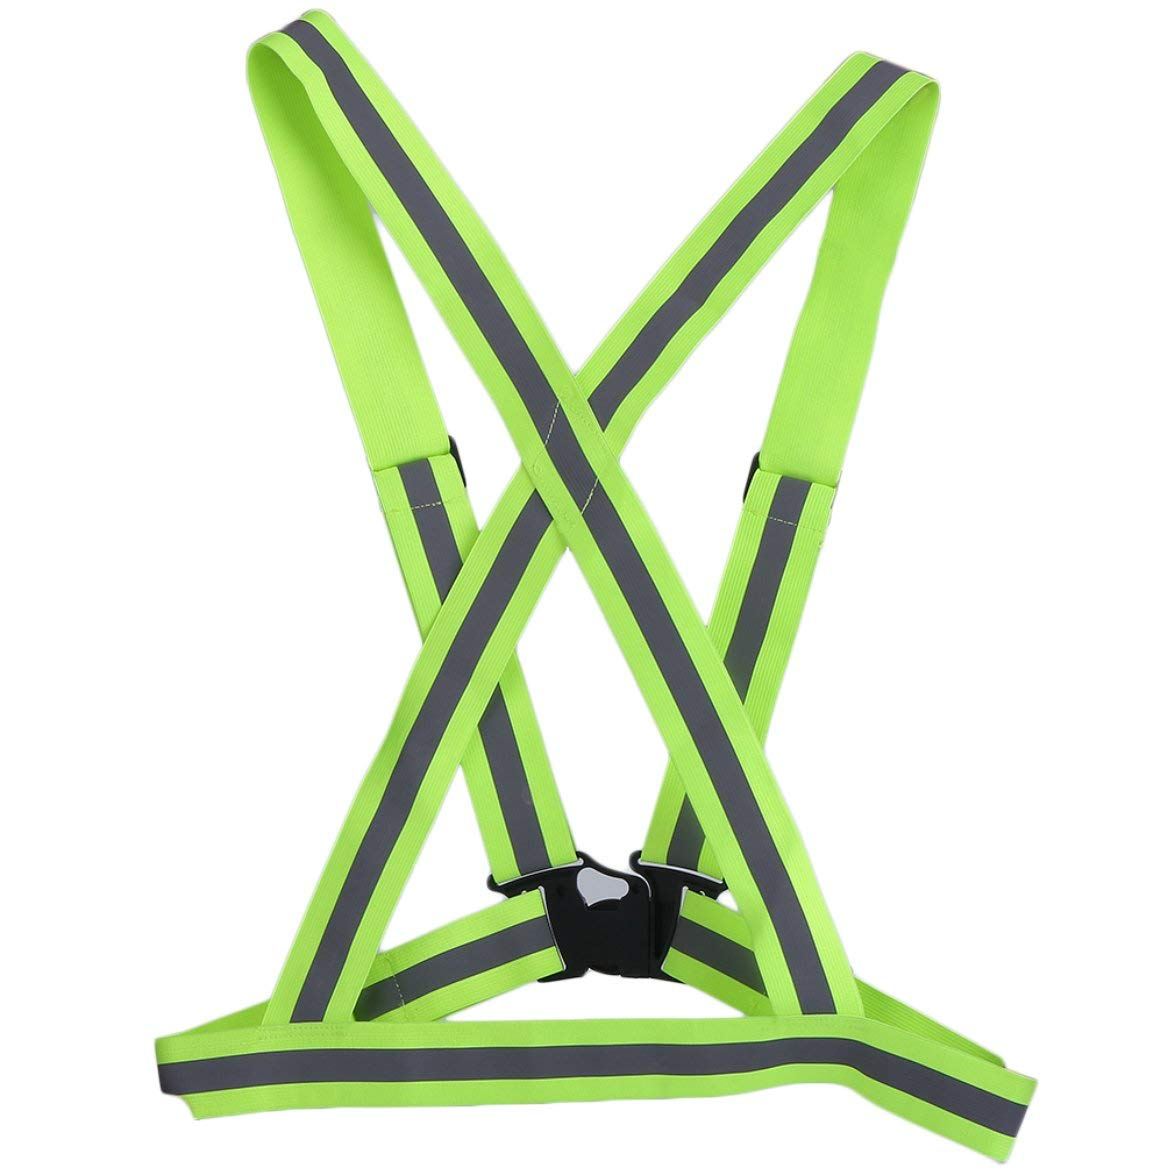 Kongqiabona High Elastic Traffic Night Work Security Running Cycling Safety Reflective Vest High Visibility Reflective Safety Vest Strip